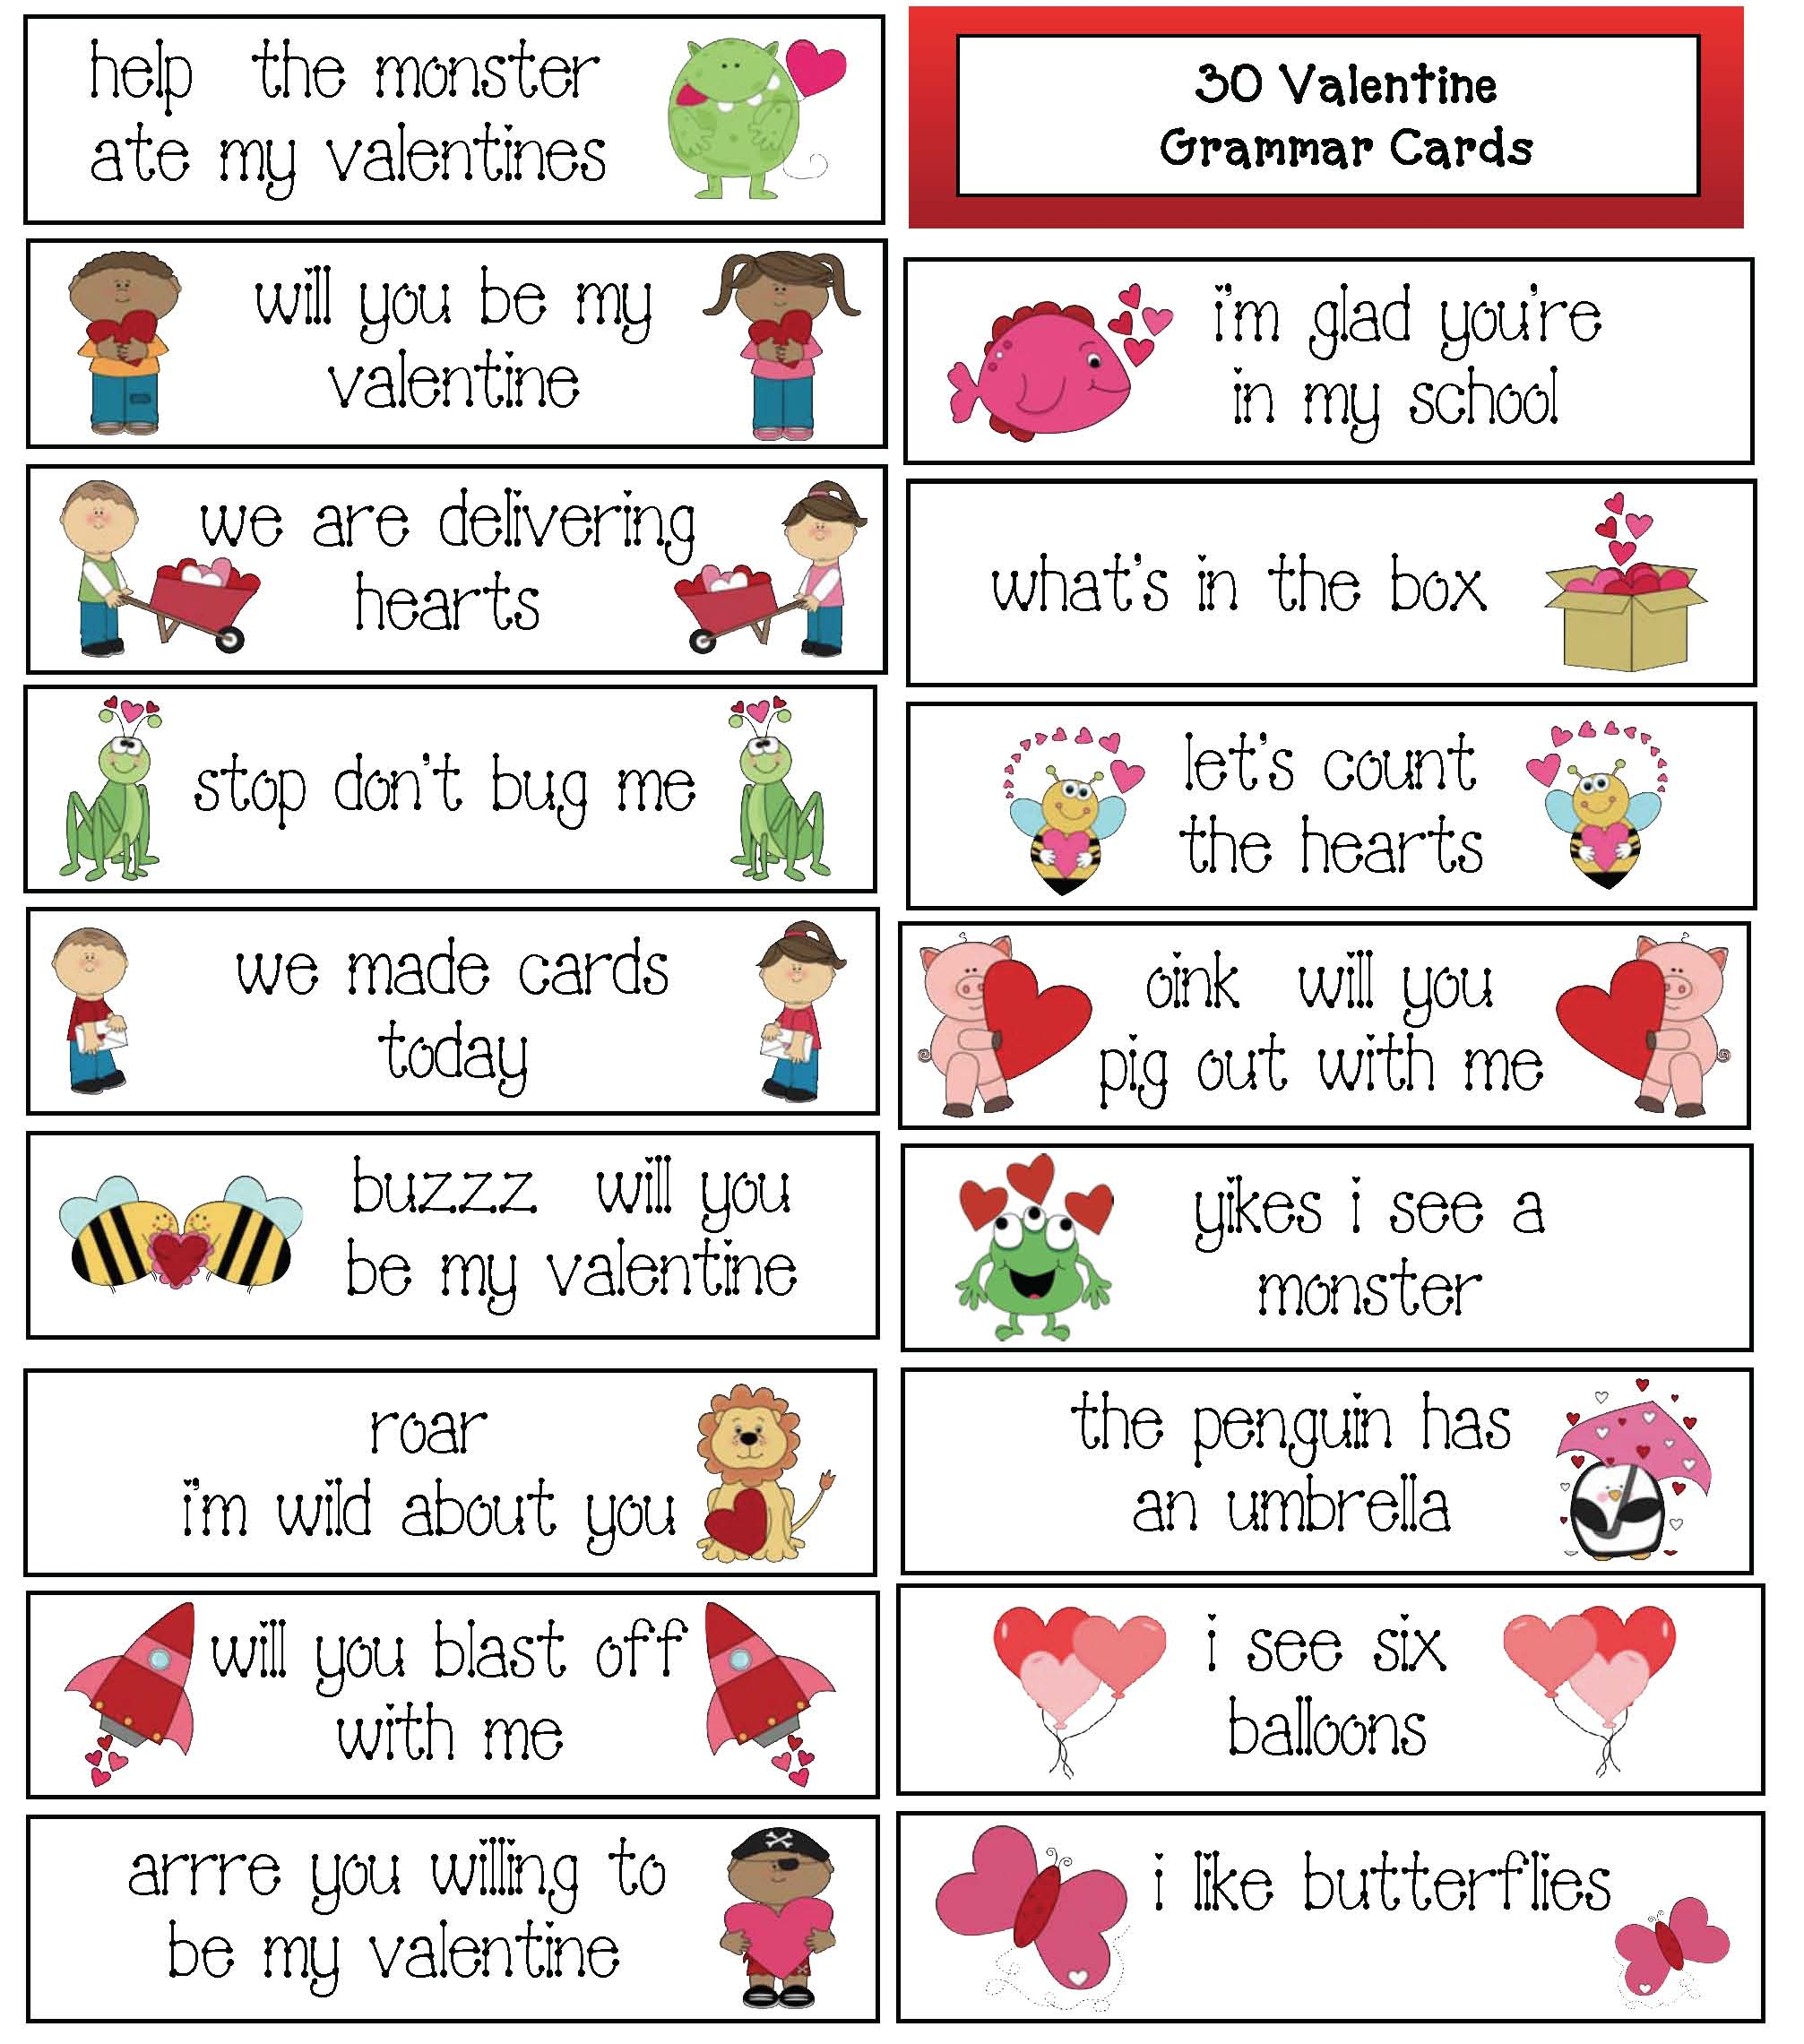 valentine activities, valentines, valentine books for kids, end punctuation activities, beginning capitalization activities, February bulletin board ideas, valentine crafts, valentine bookmarks, valentine number puzzles, keepsake valentines, hand print valentines, valentine books, venn friend valentines, valentine writing prompts,valentine cards, valentine games,